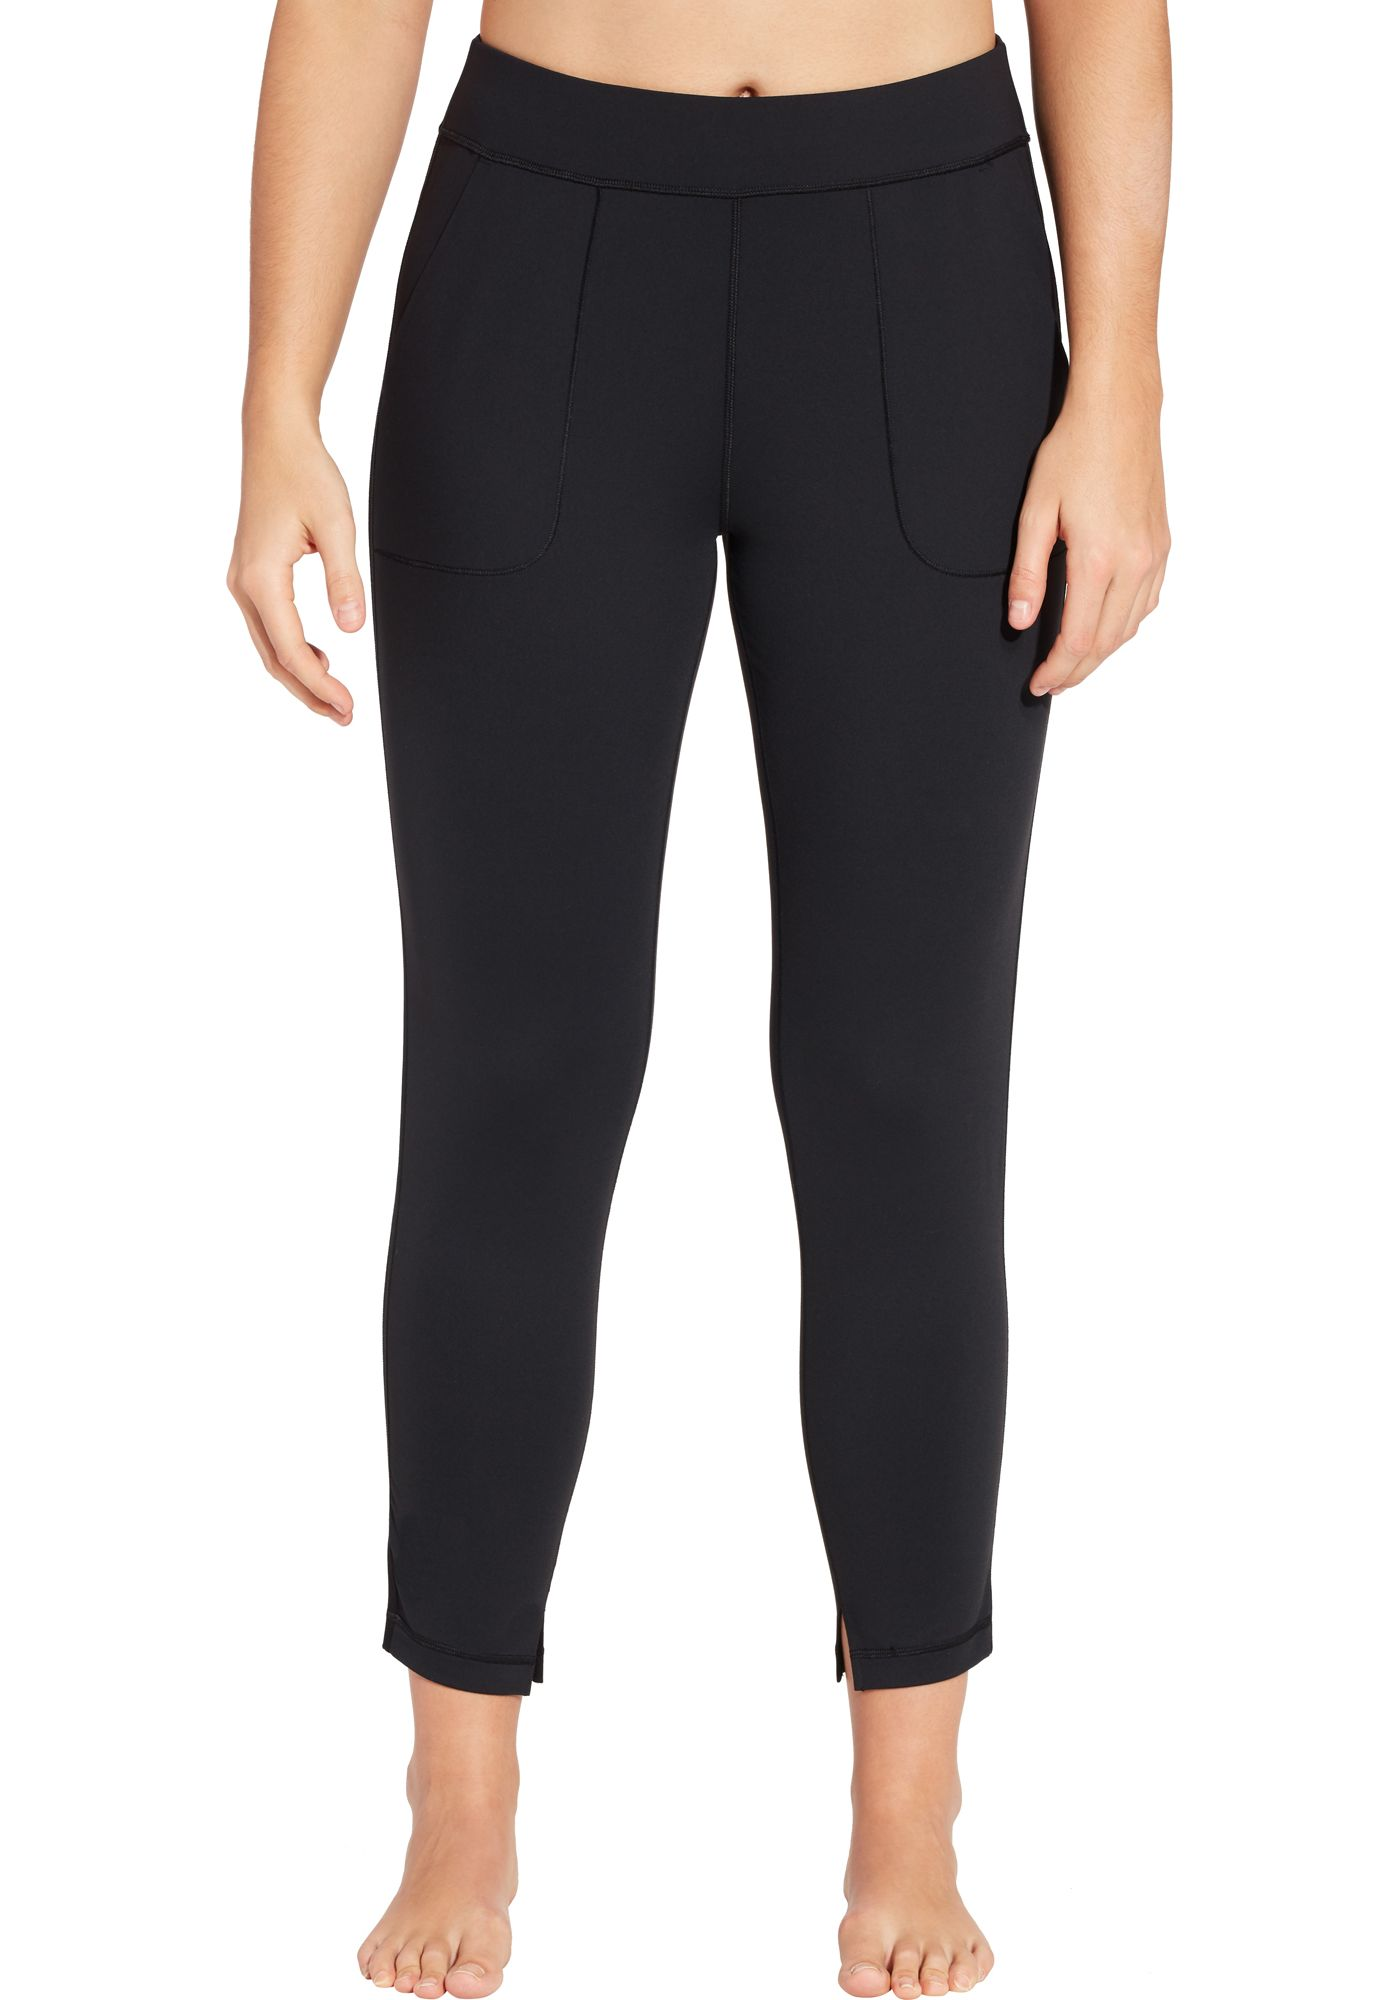 CALIA by Carrie Underwood Women's Journey Stacked Hem Pants